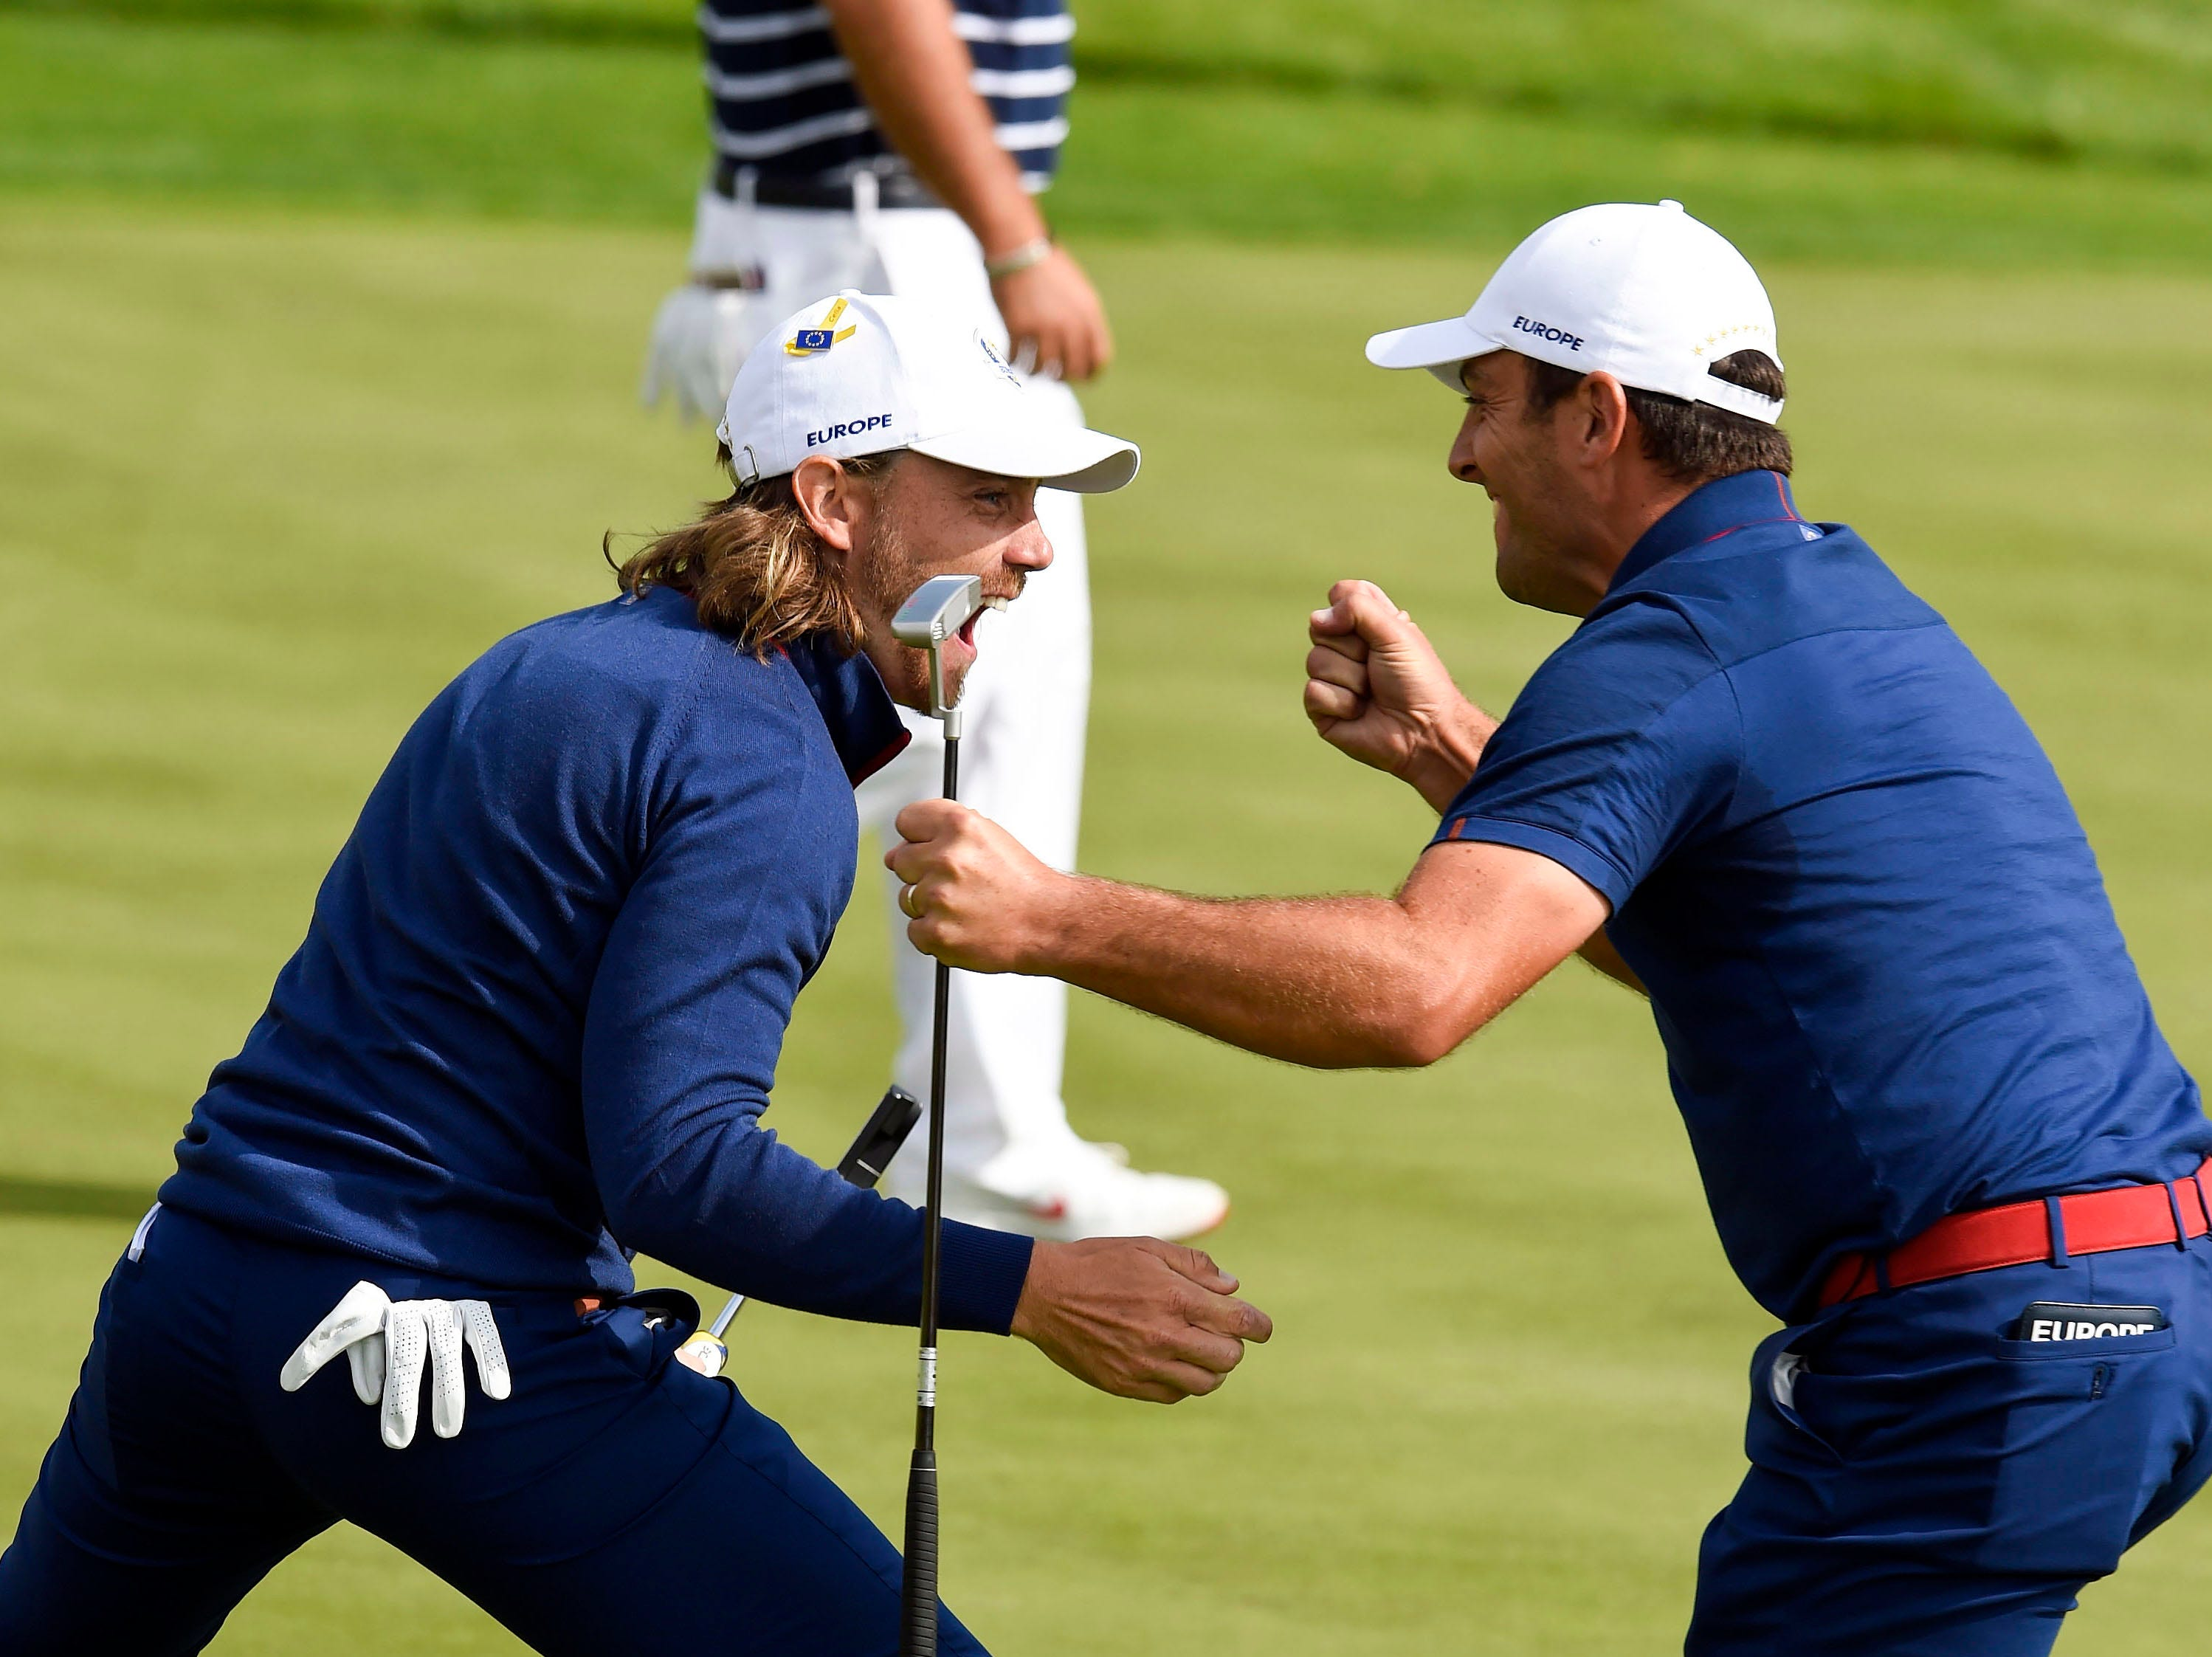 Europe's Tommy Fleetwood and Francesco Molinari react to winning their match on the 17th green during the Ryder Cup Friday morning matches.